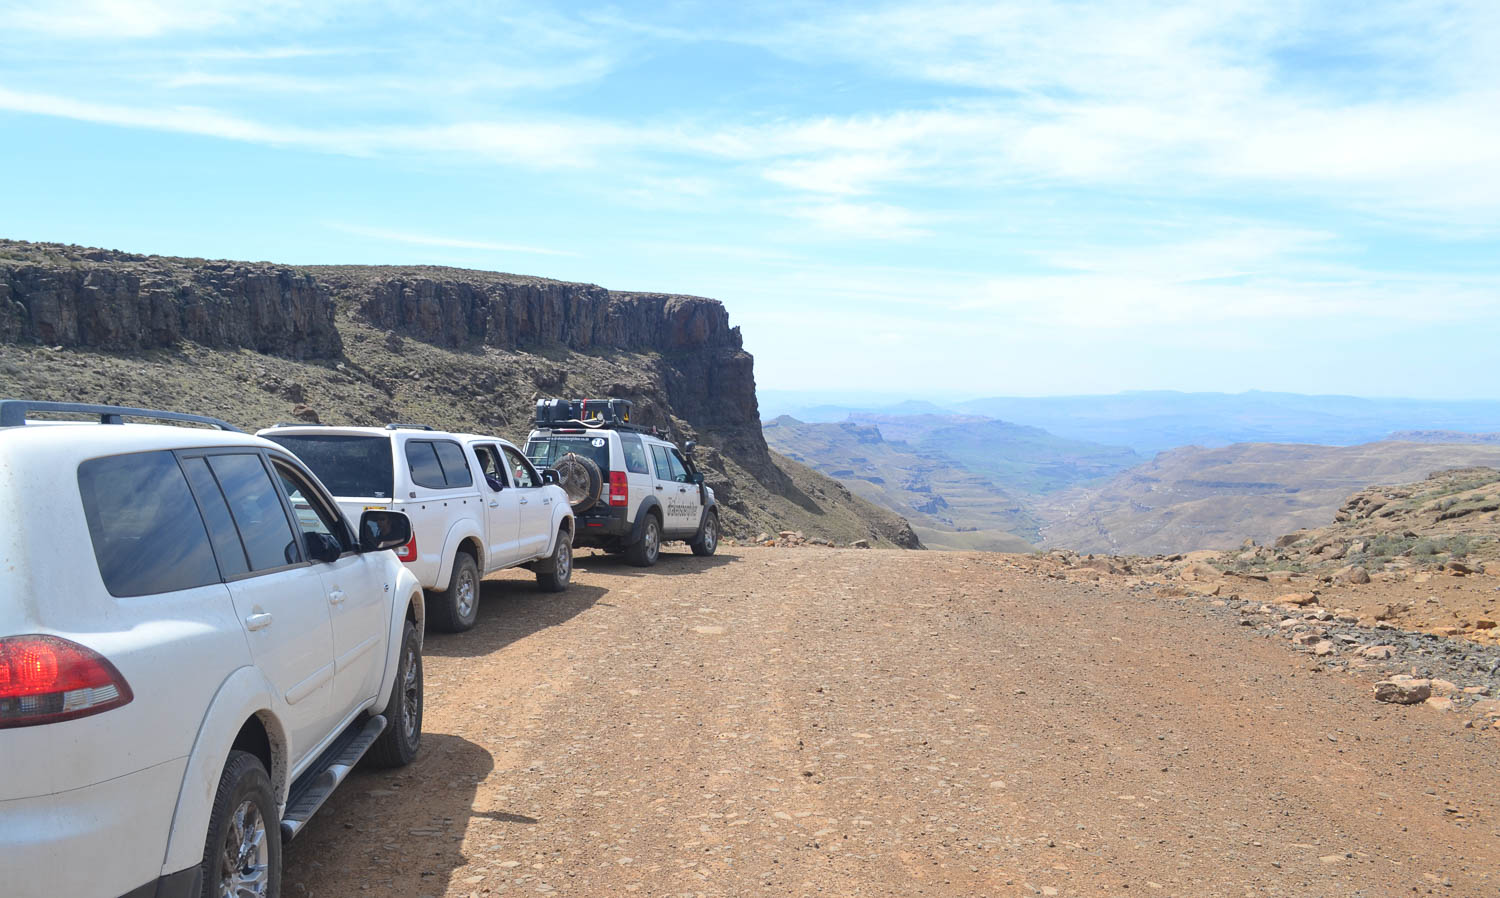 Into the Great Wide Open with South Africa Overland 4x4 Tours